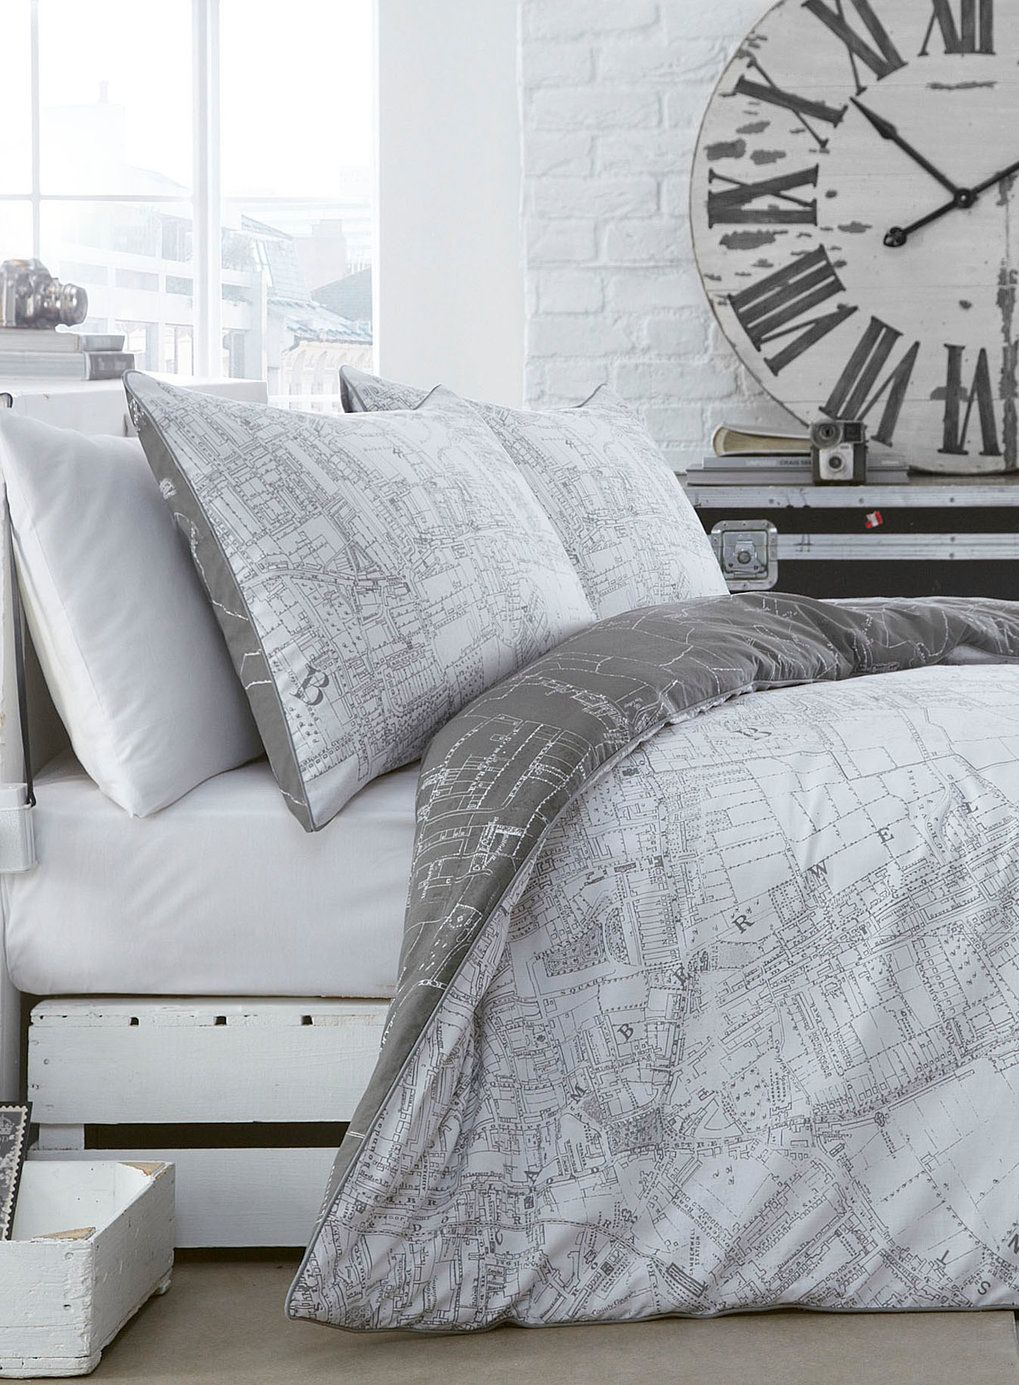 Map printed bedding set bhs bedroom inspiration pinterest map printed bedding set bhs gumiabroncs Choice Image